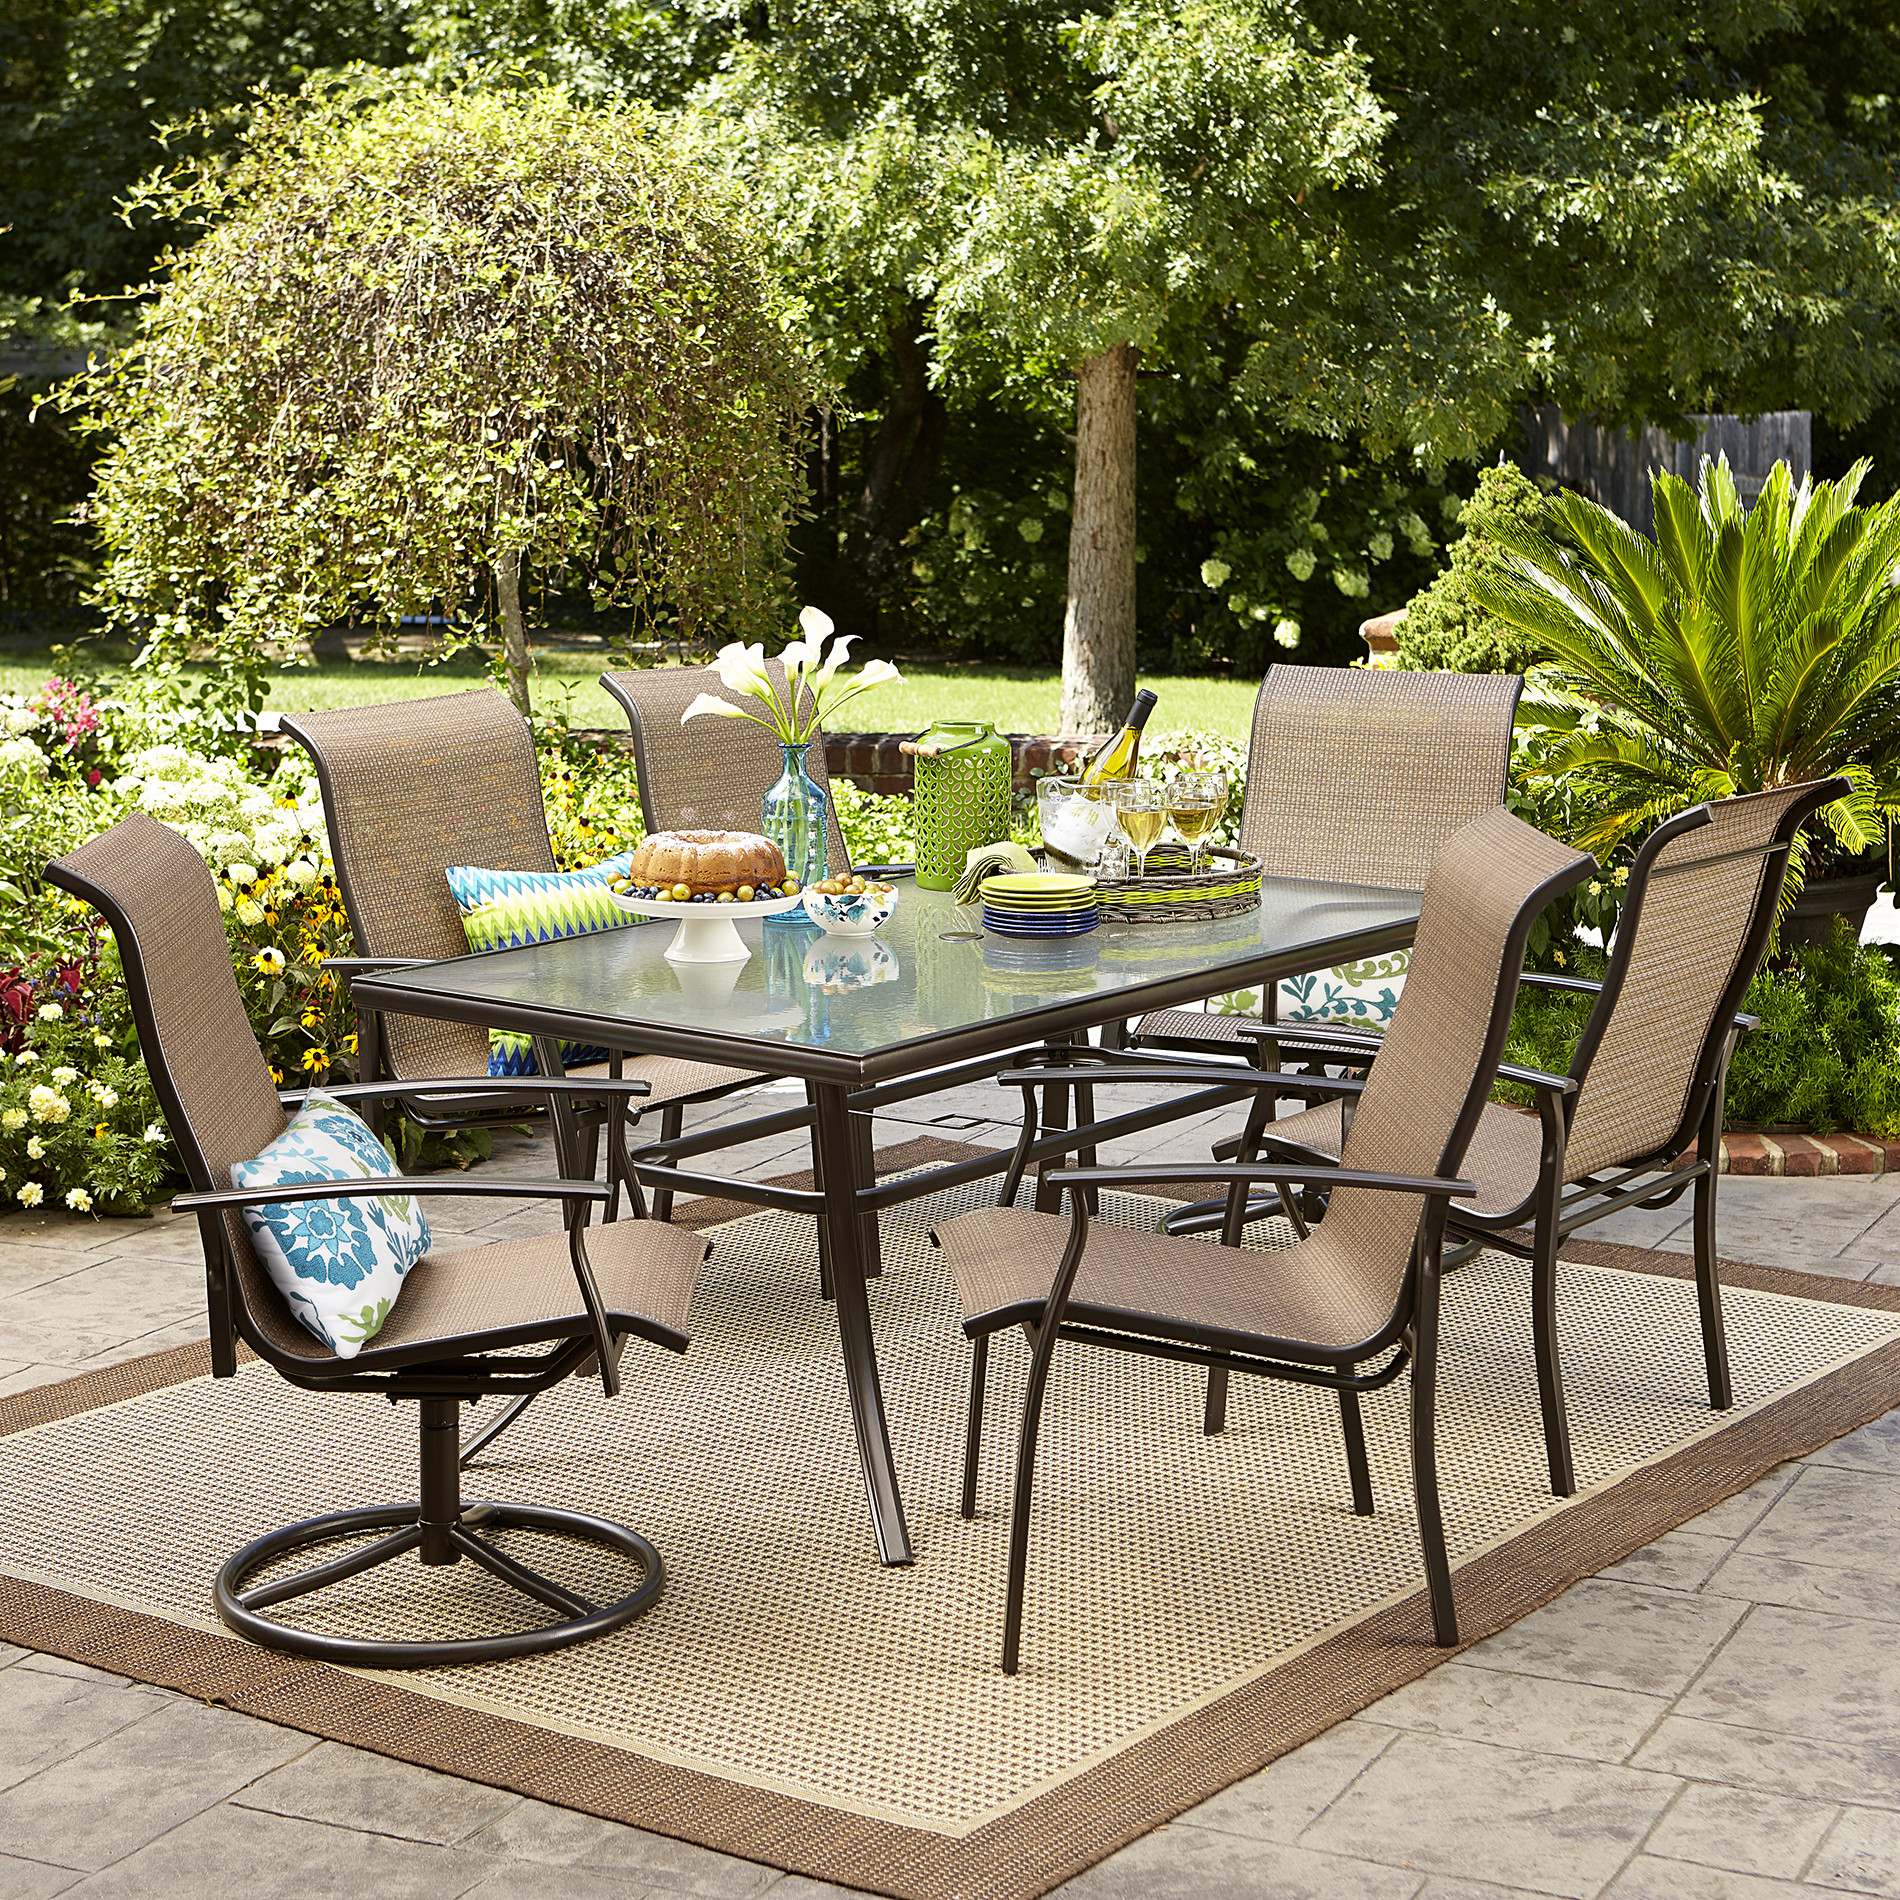 Best ideas about Patio Dining Set . Save or Pin Garden Oasis Harrison 7 Piece Dining Set Now.